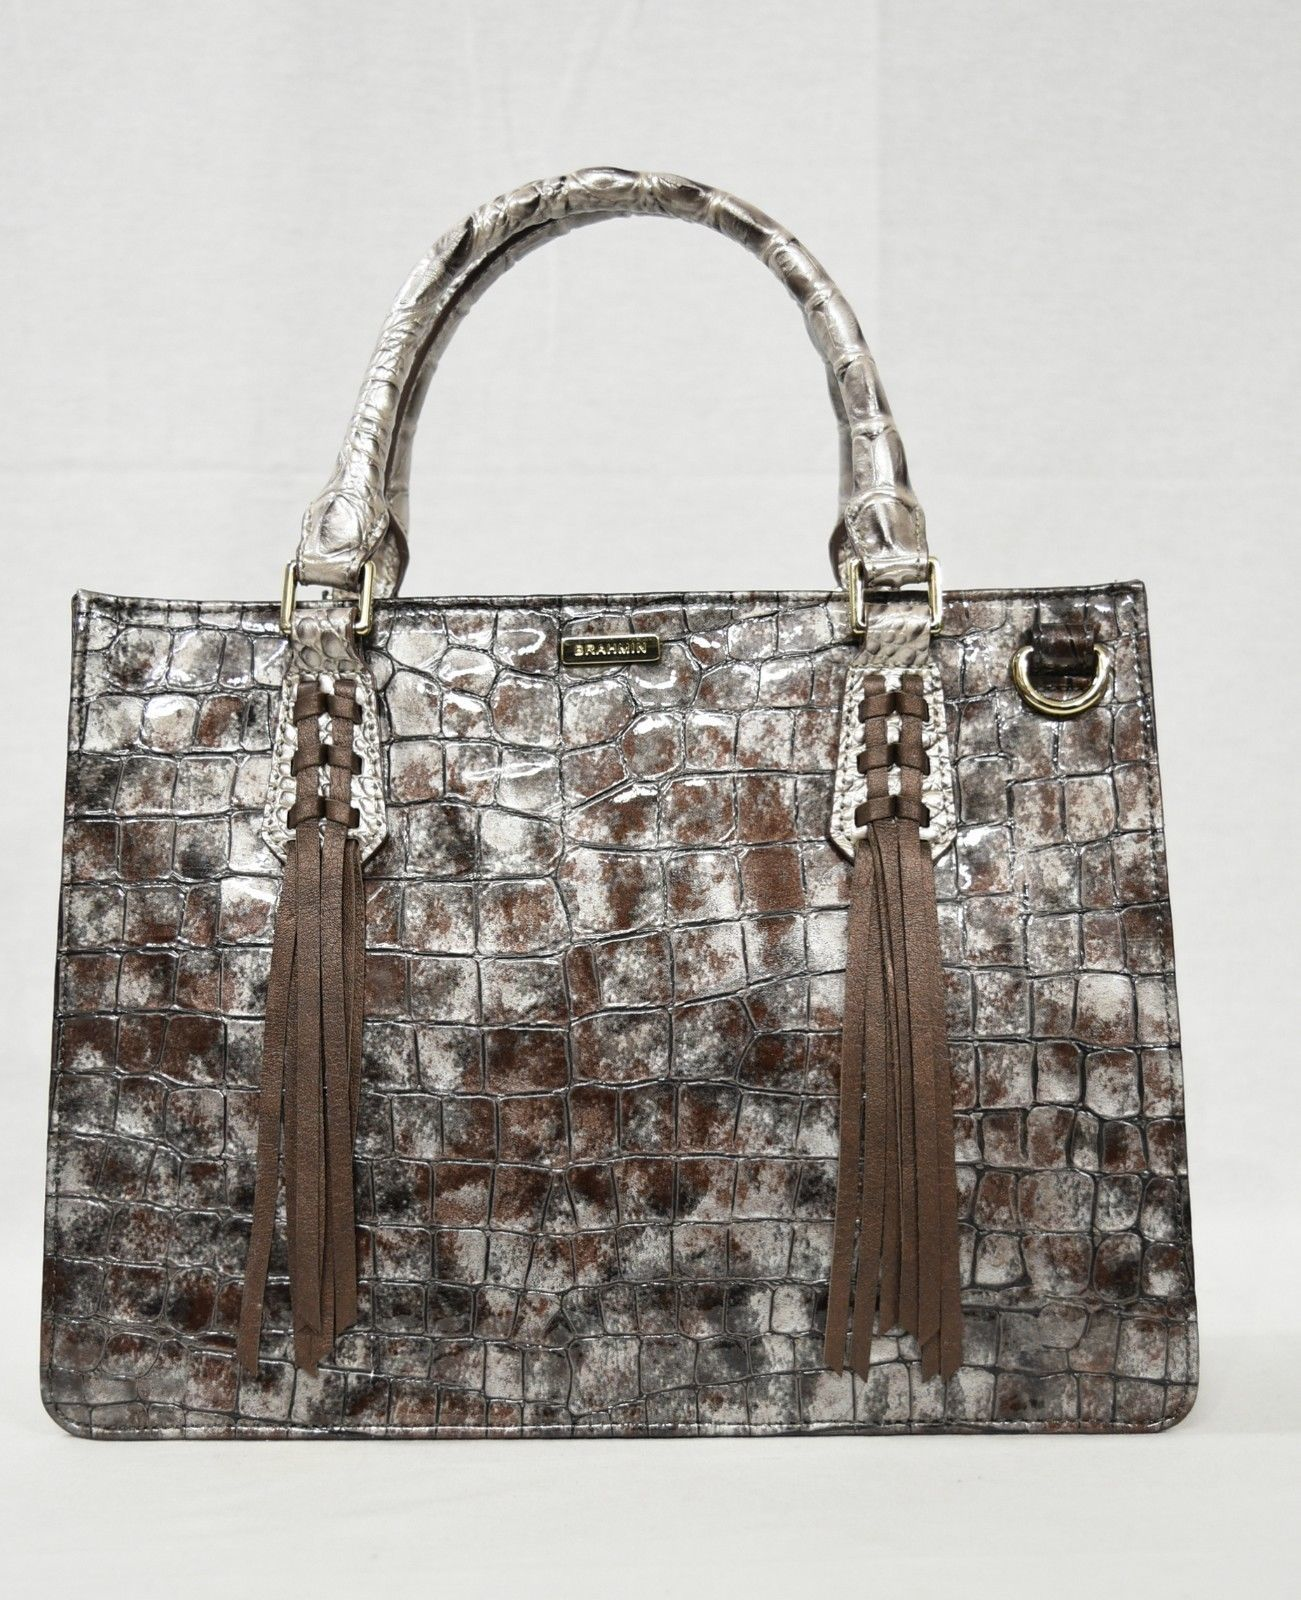 NWT Brahmin Small Camille Leather Satchel/Shoulder Bag in Brown Charente image 3